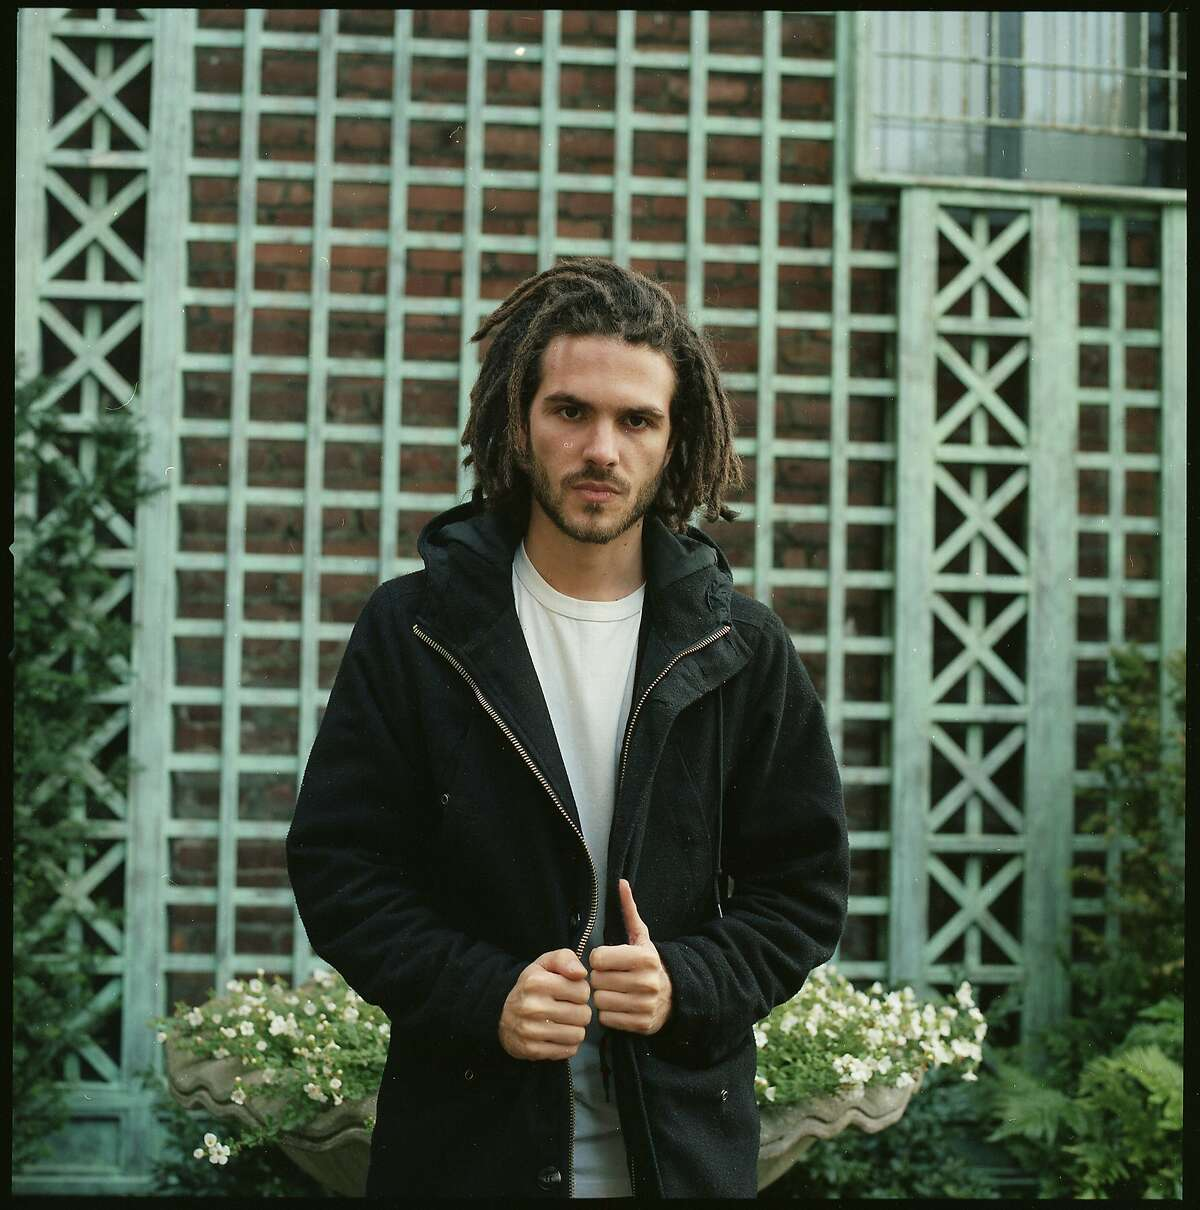 Vincent Fenton, known under the pseudonym FKJ (French Kiwi Juice), will perform at The Warfield in San Francisco on April 14, 2017 in advance of his Coachella debut.